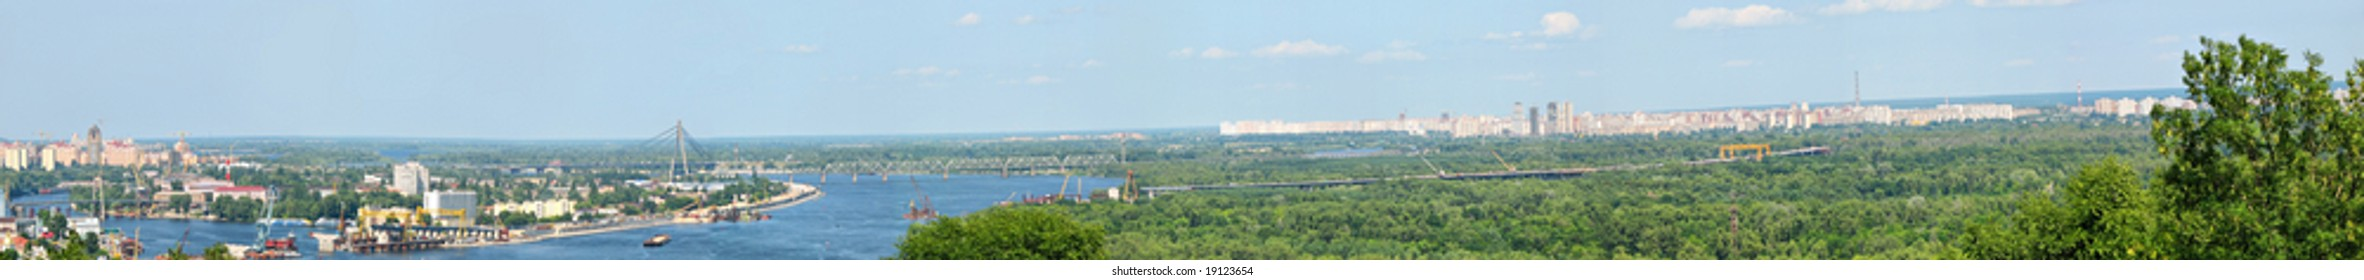 panorama of kiev city - the capital of ukraine